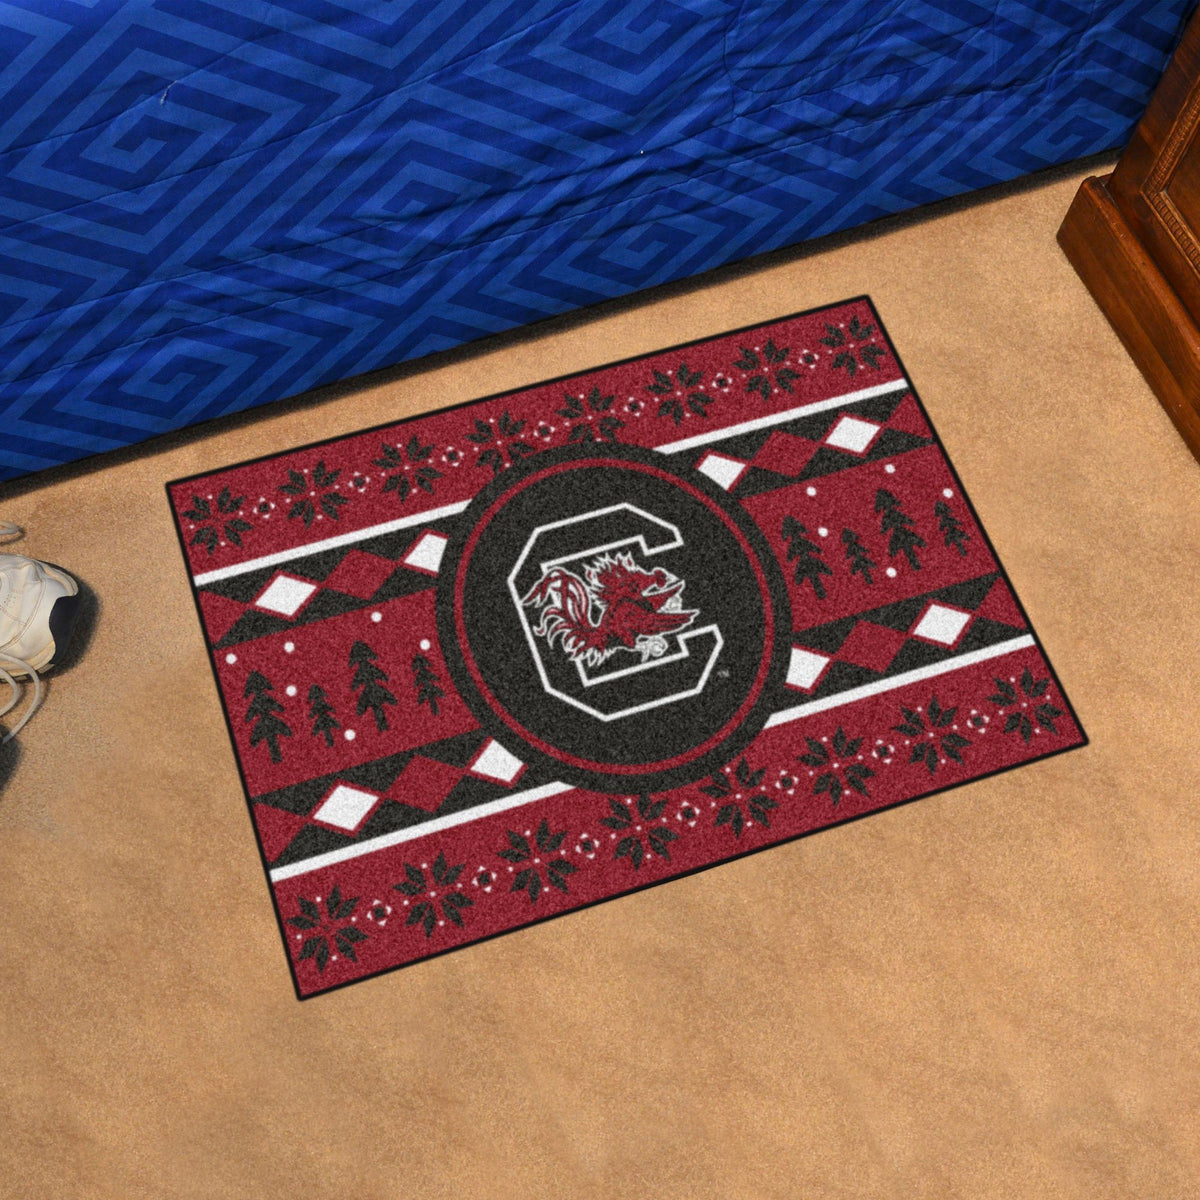 Collegiate - Holiday Sweater Starter Mat Collegiate Mats, Rectangular Mats, Holiday Sweater Starter Mat, Collegiate, Home Fan Mats South Carolina